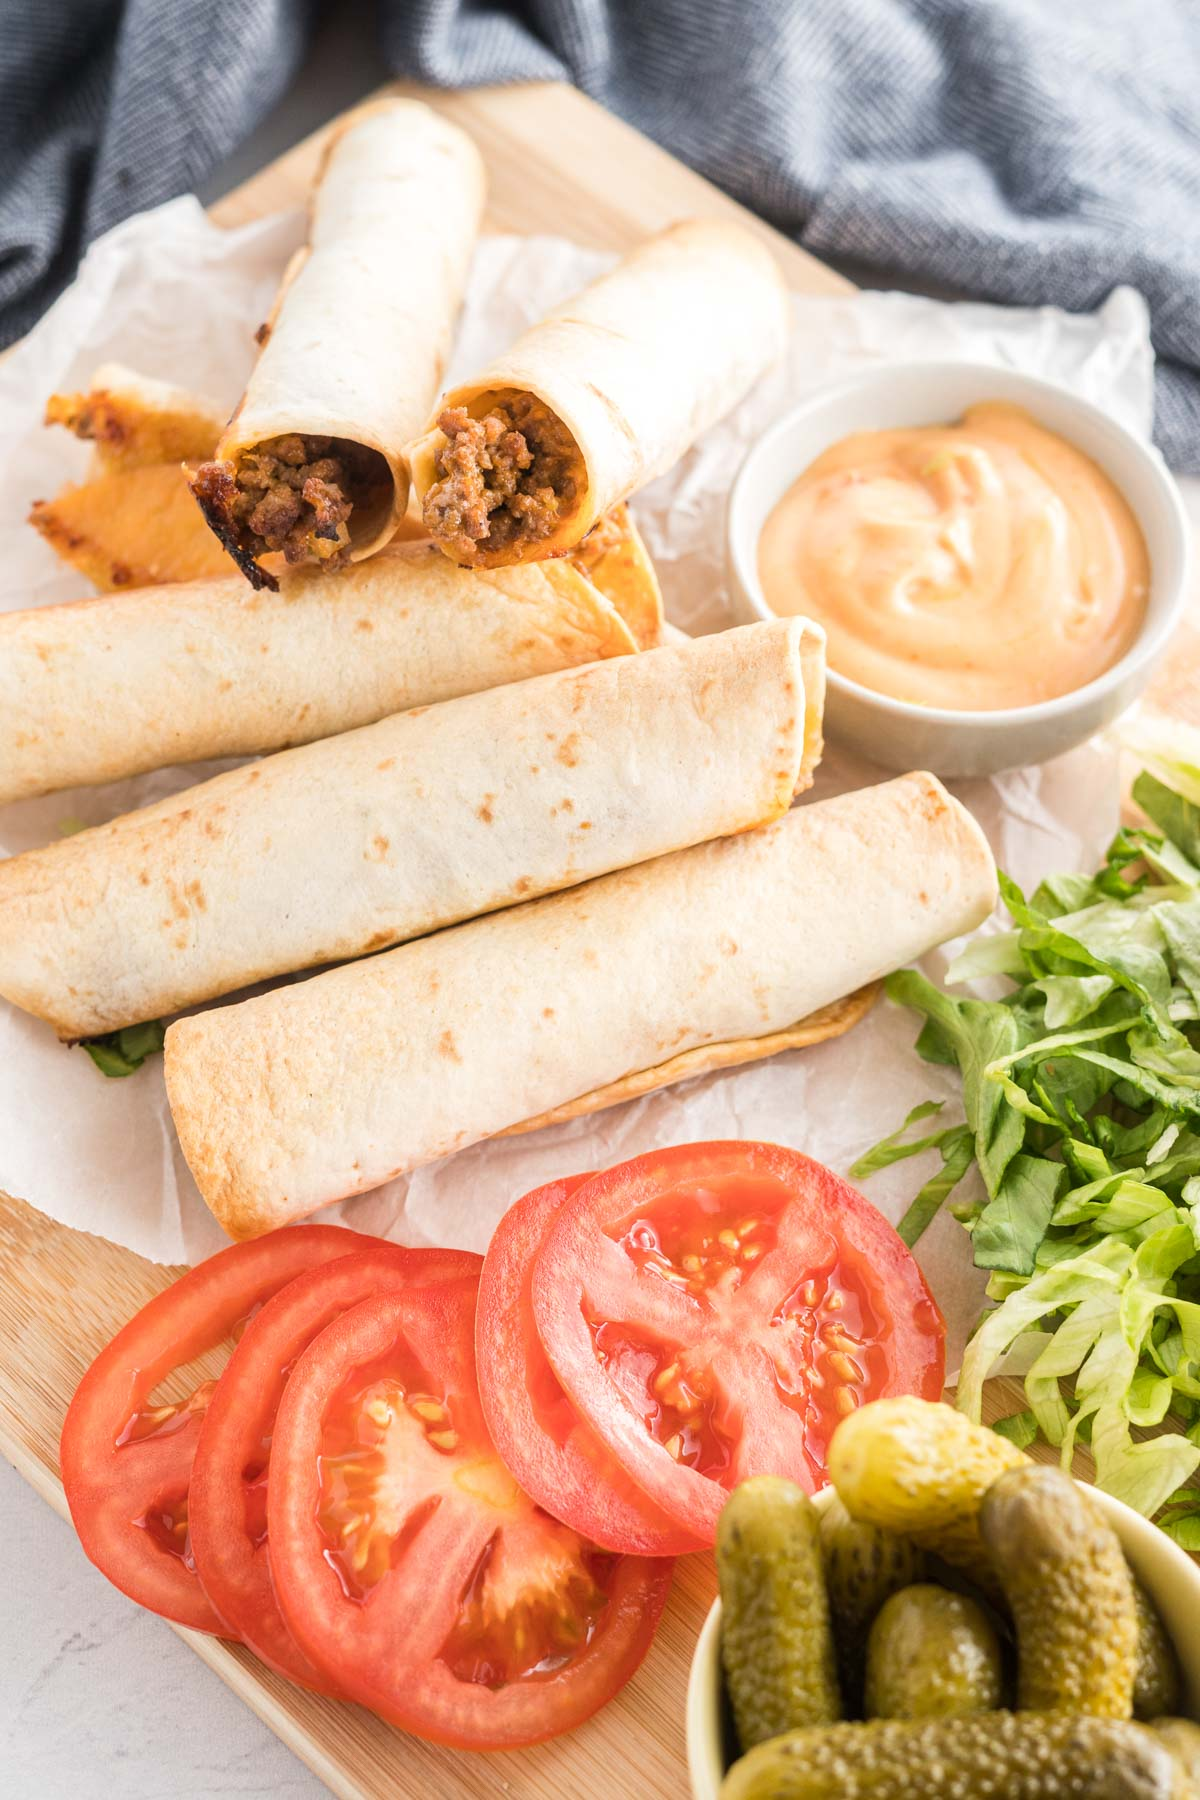 Taquitos on a platter with sliced tomatoes, shredded lettuce, dill pickles and a dish of burger sauce.